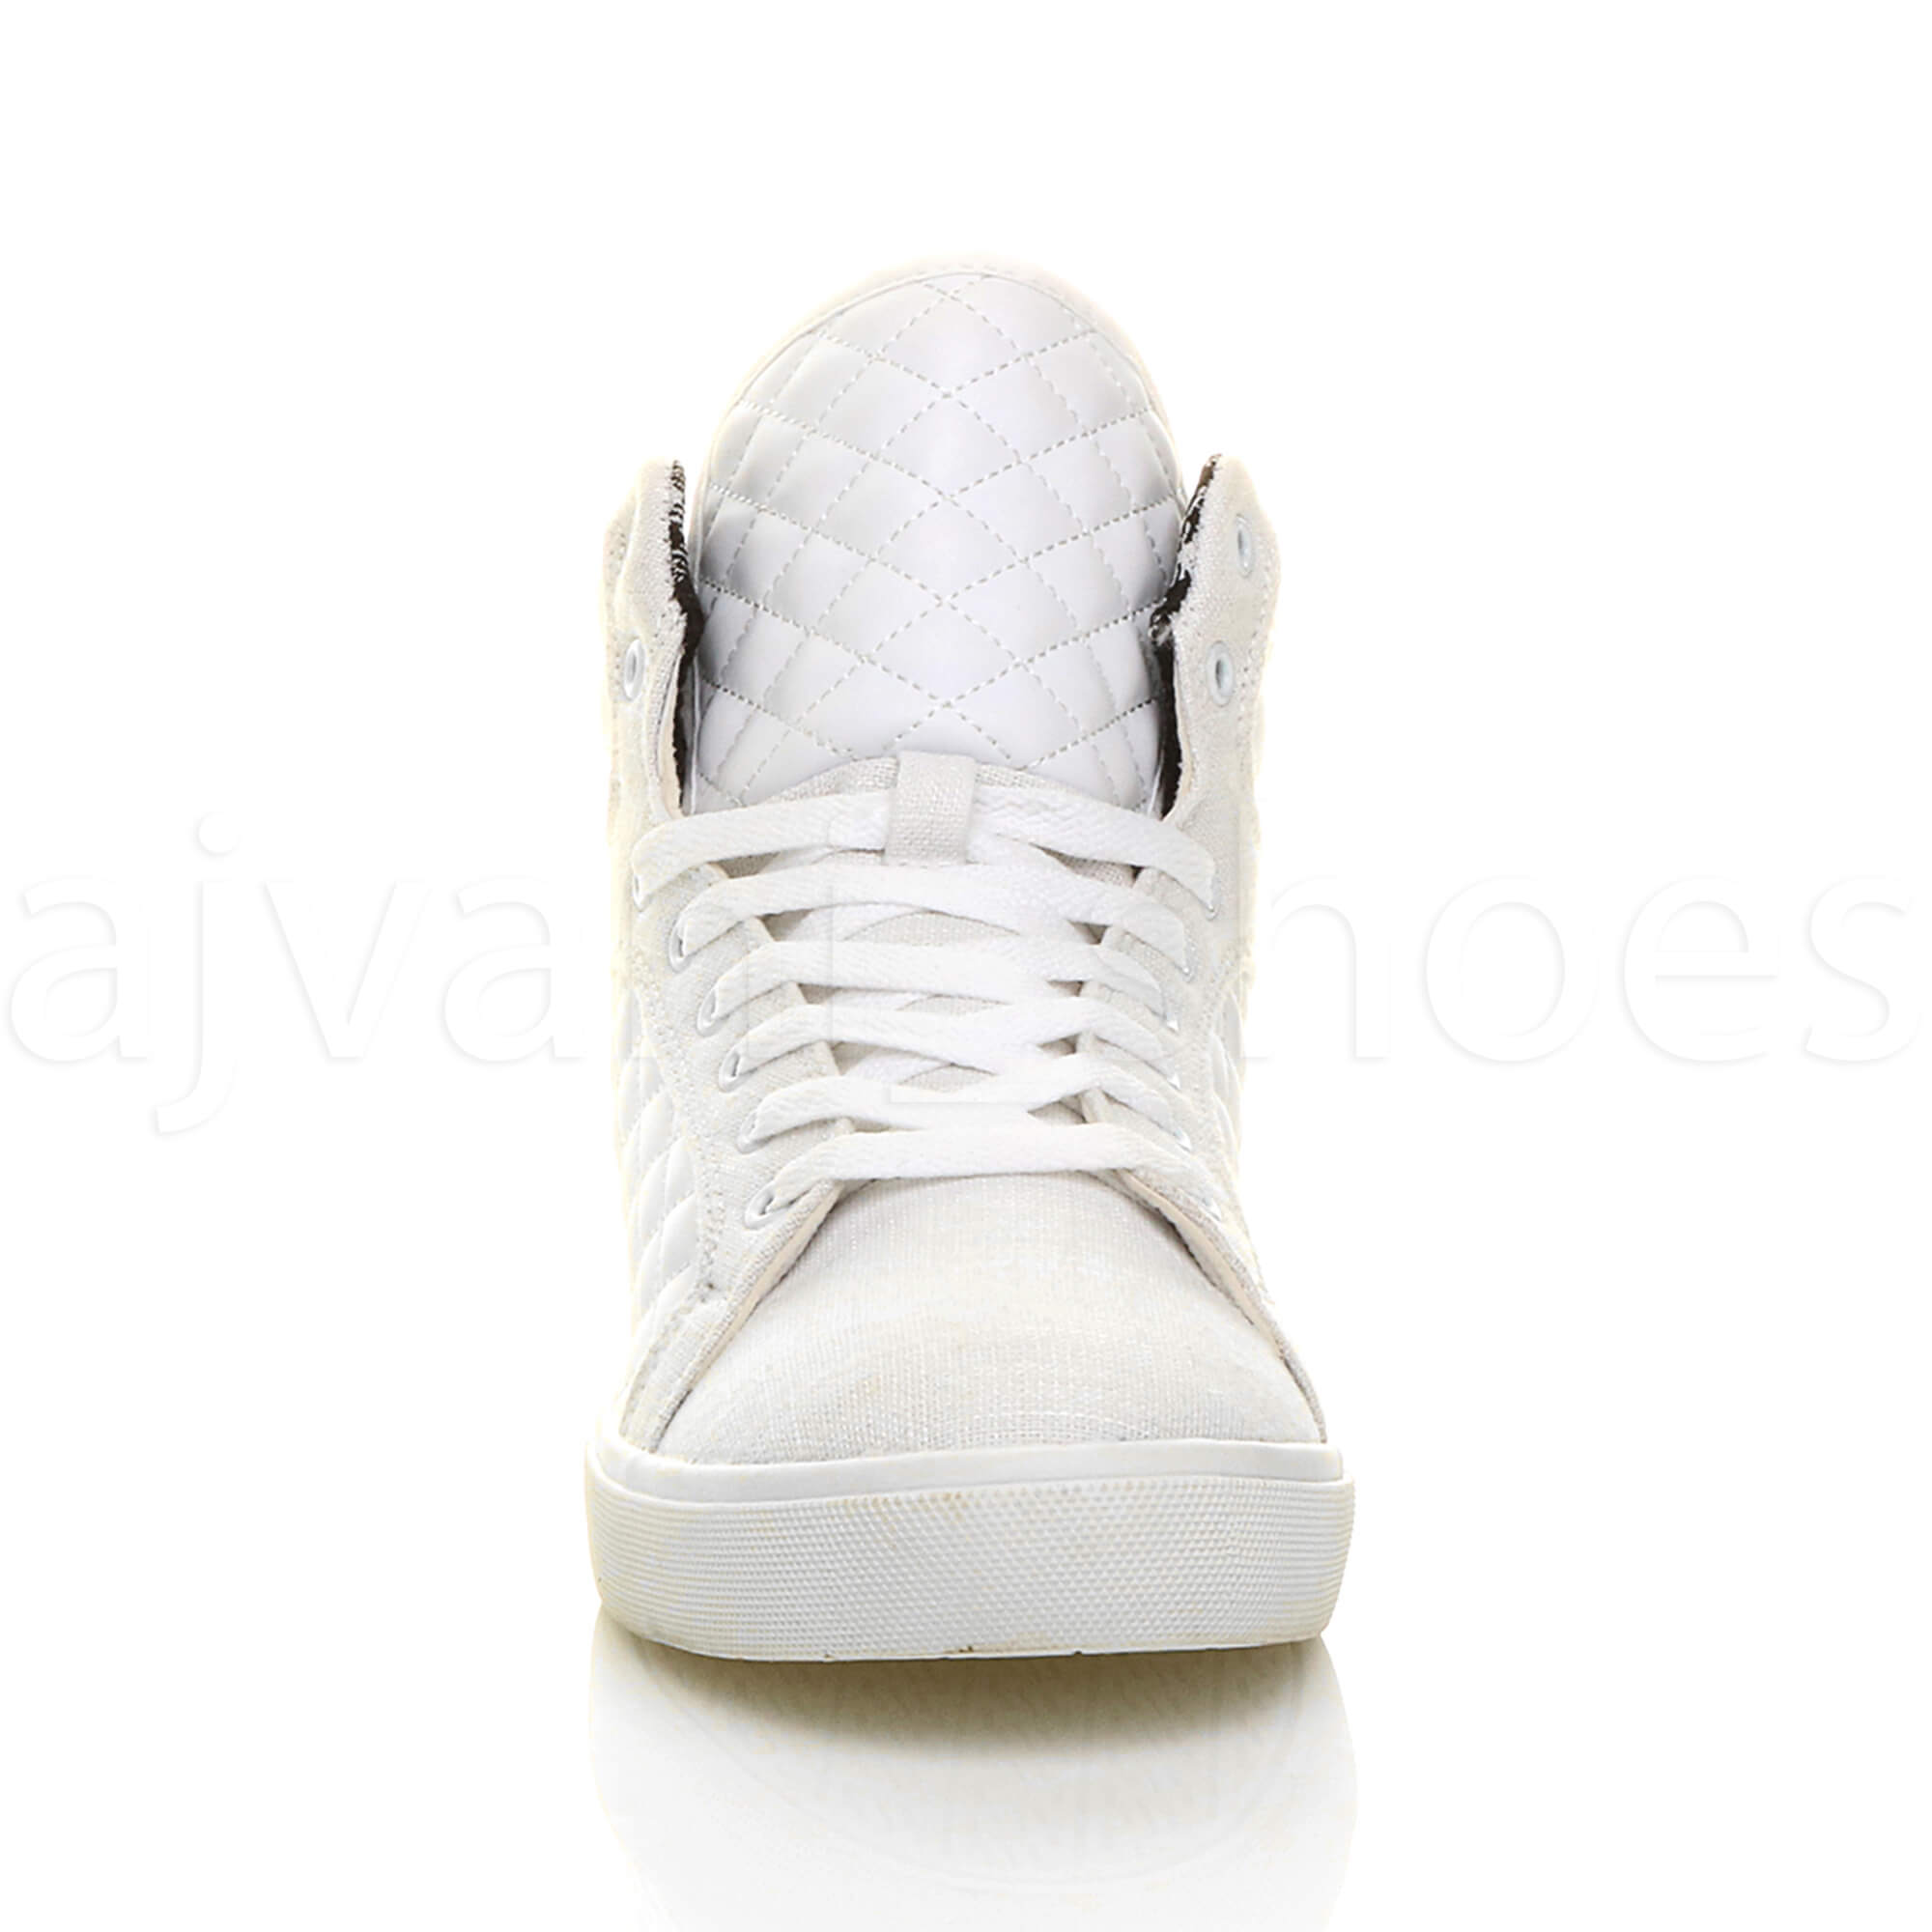 MENS-QUILTED-LACE-UP-FLAT-CASUAL-HI-HIGH-TOP-TRAINERS-SHOES-ANKLE-BOOTS-SIZE thumbnail 35